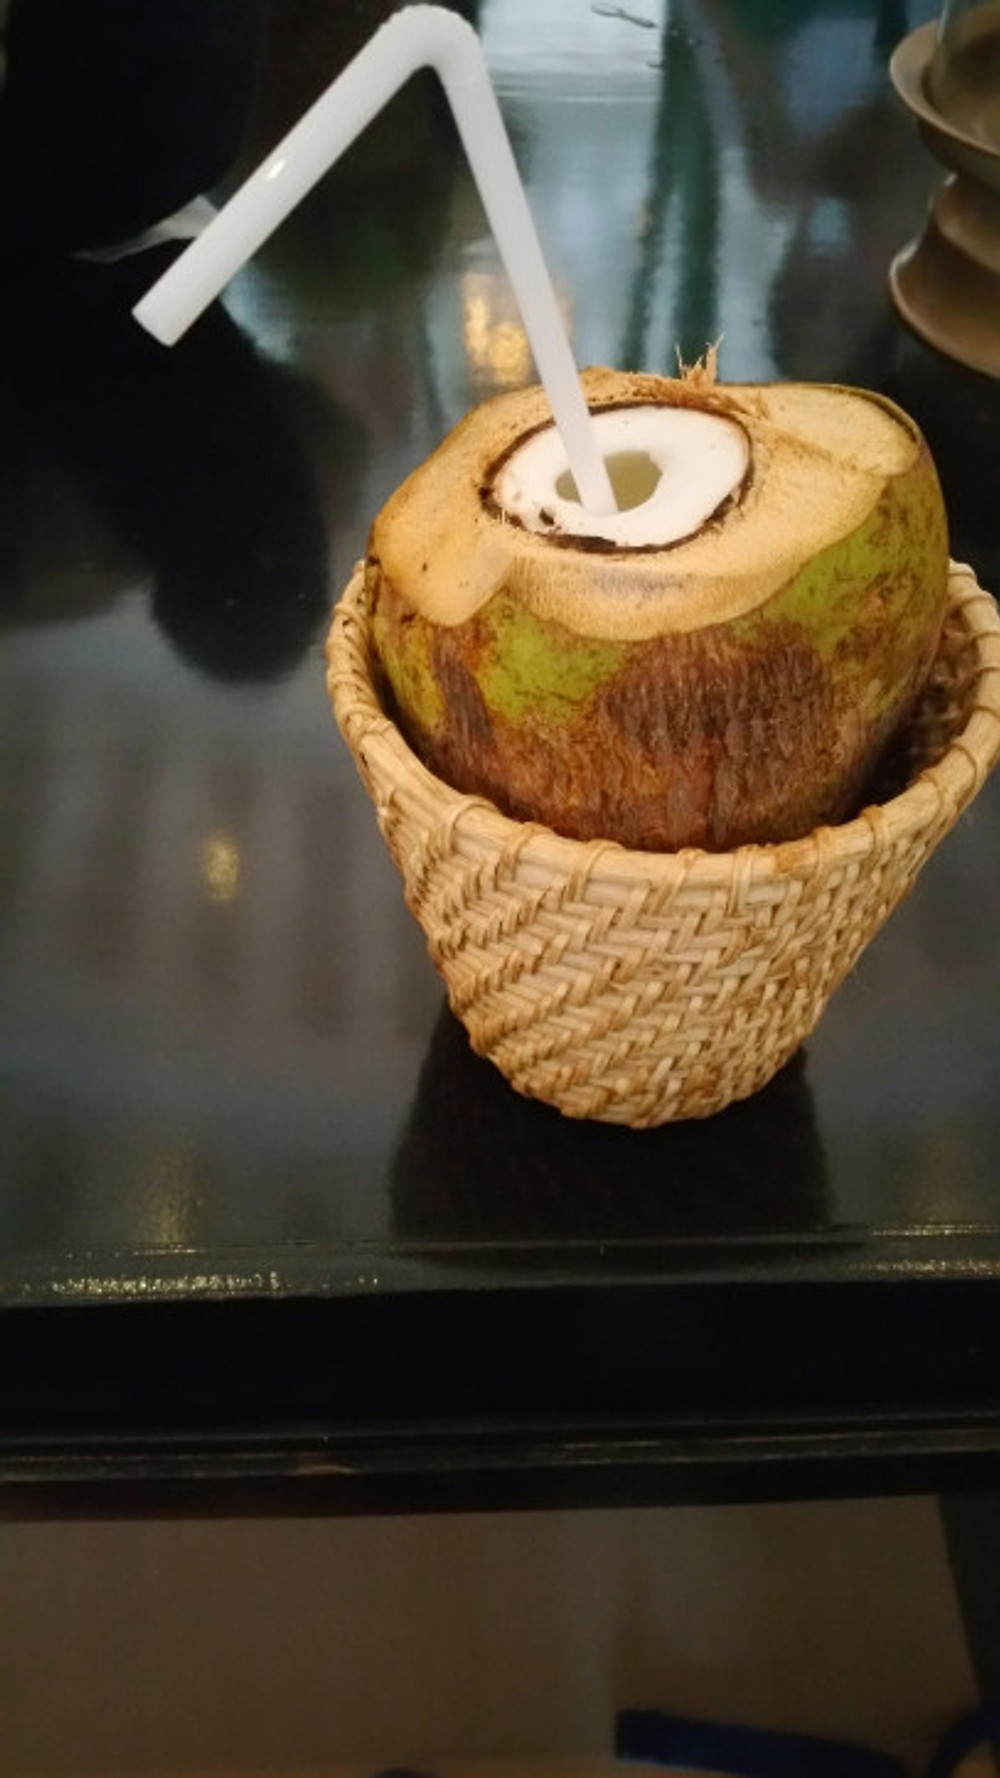 Oh yeah...also received a fresh coconut to drink from. Tasty!